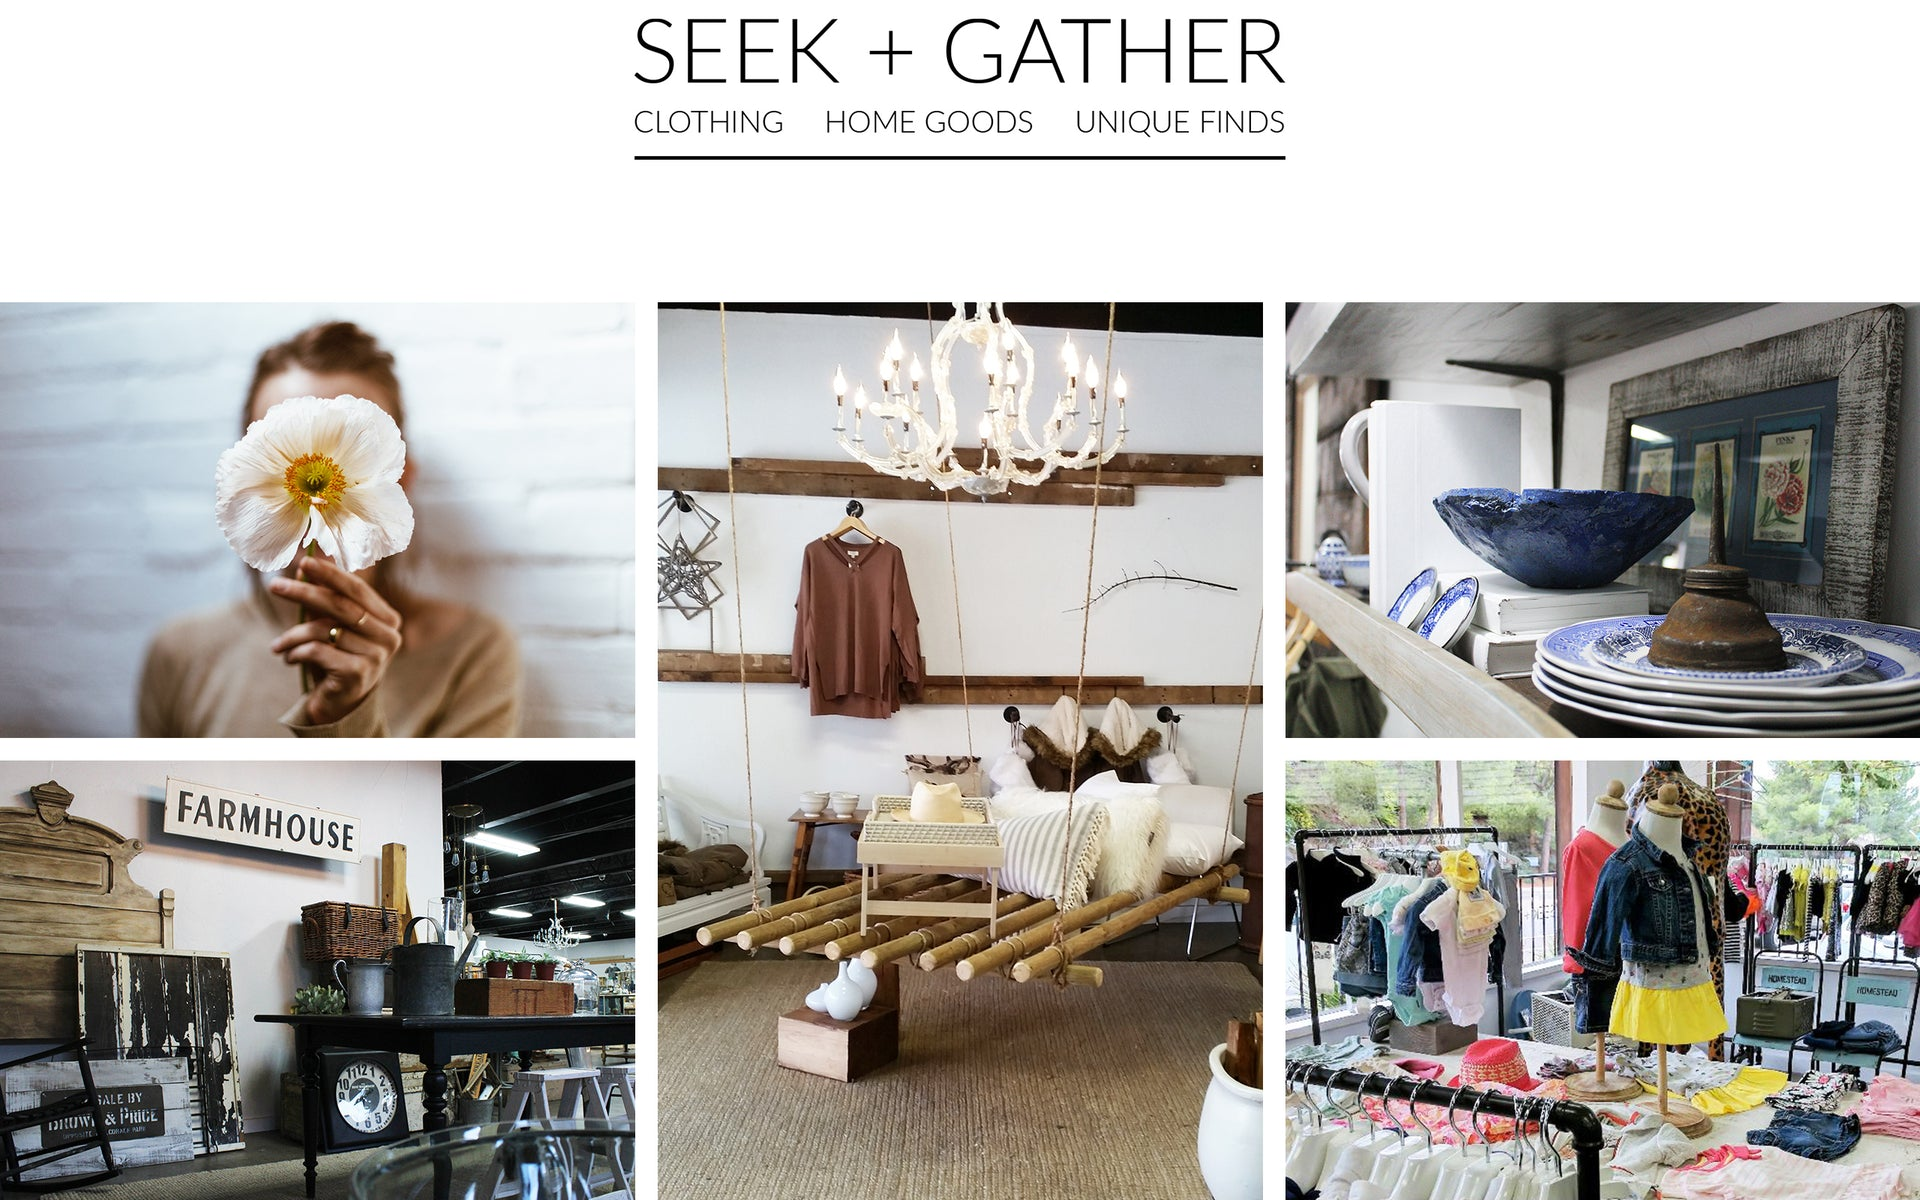 SEEK + GATHER